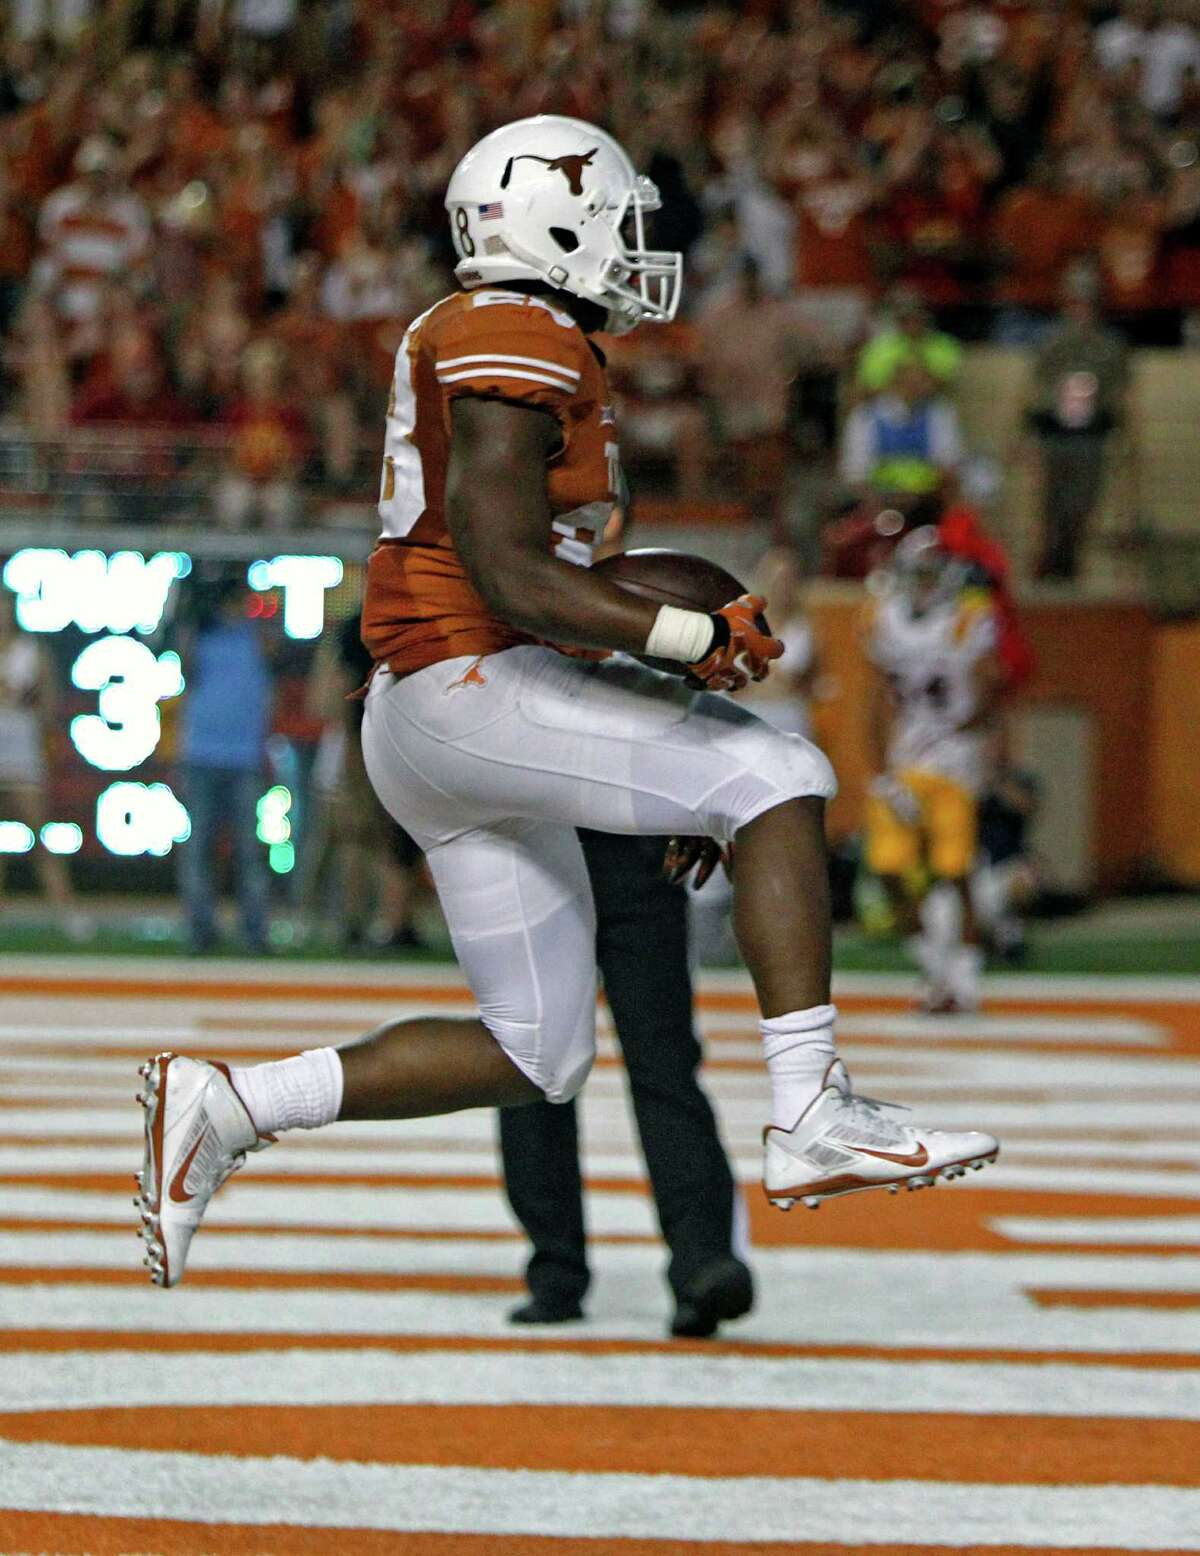 Texas running back Malcolm Brown jumps into the end zone after scoring a touchdown during the fourth quarter of an NCAA college football game against Iowa State in Austin, Texas, Saturday, Oct. 18, 2014. Texas won 48-45. (AP Photo/Michael Thomas)